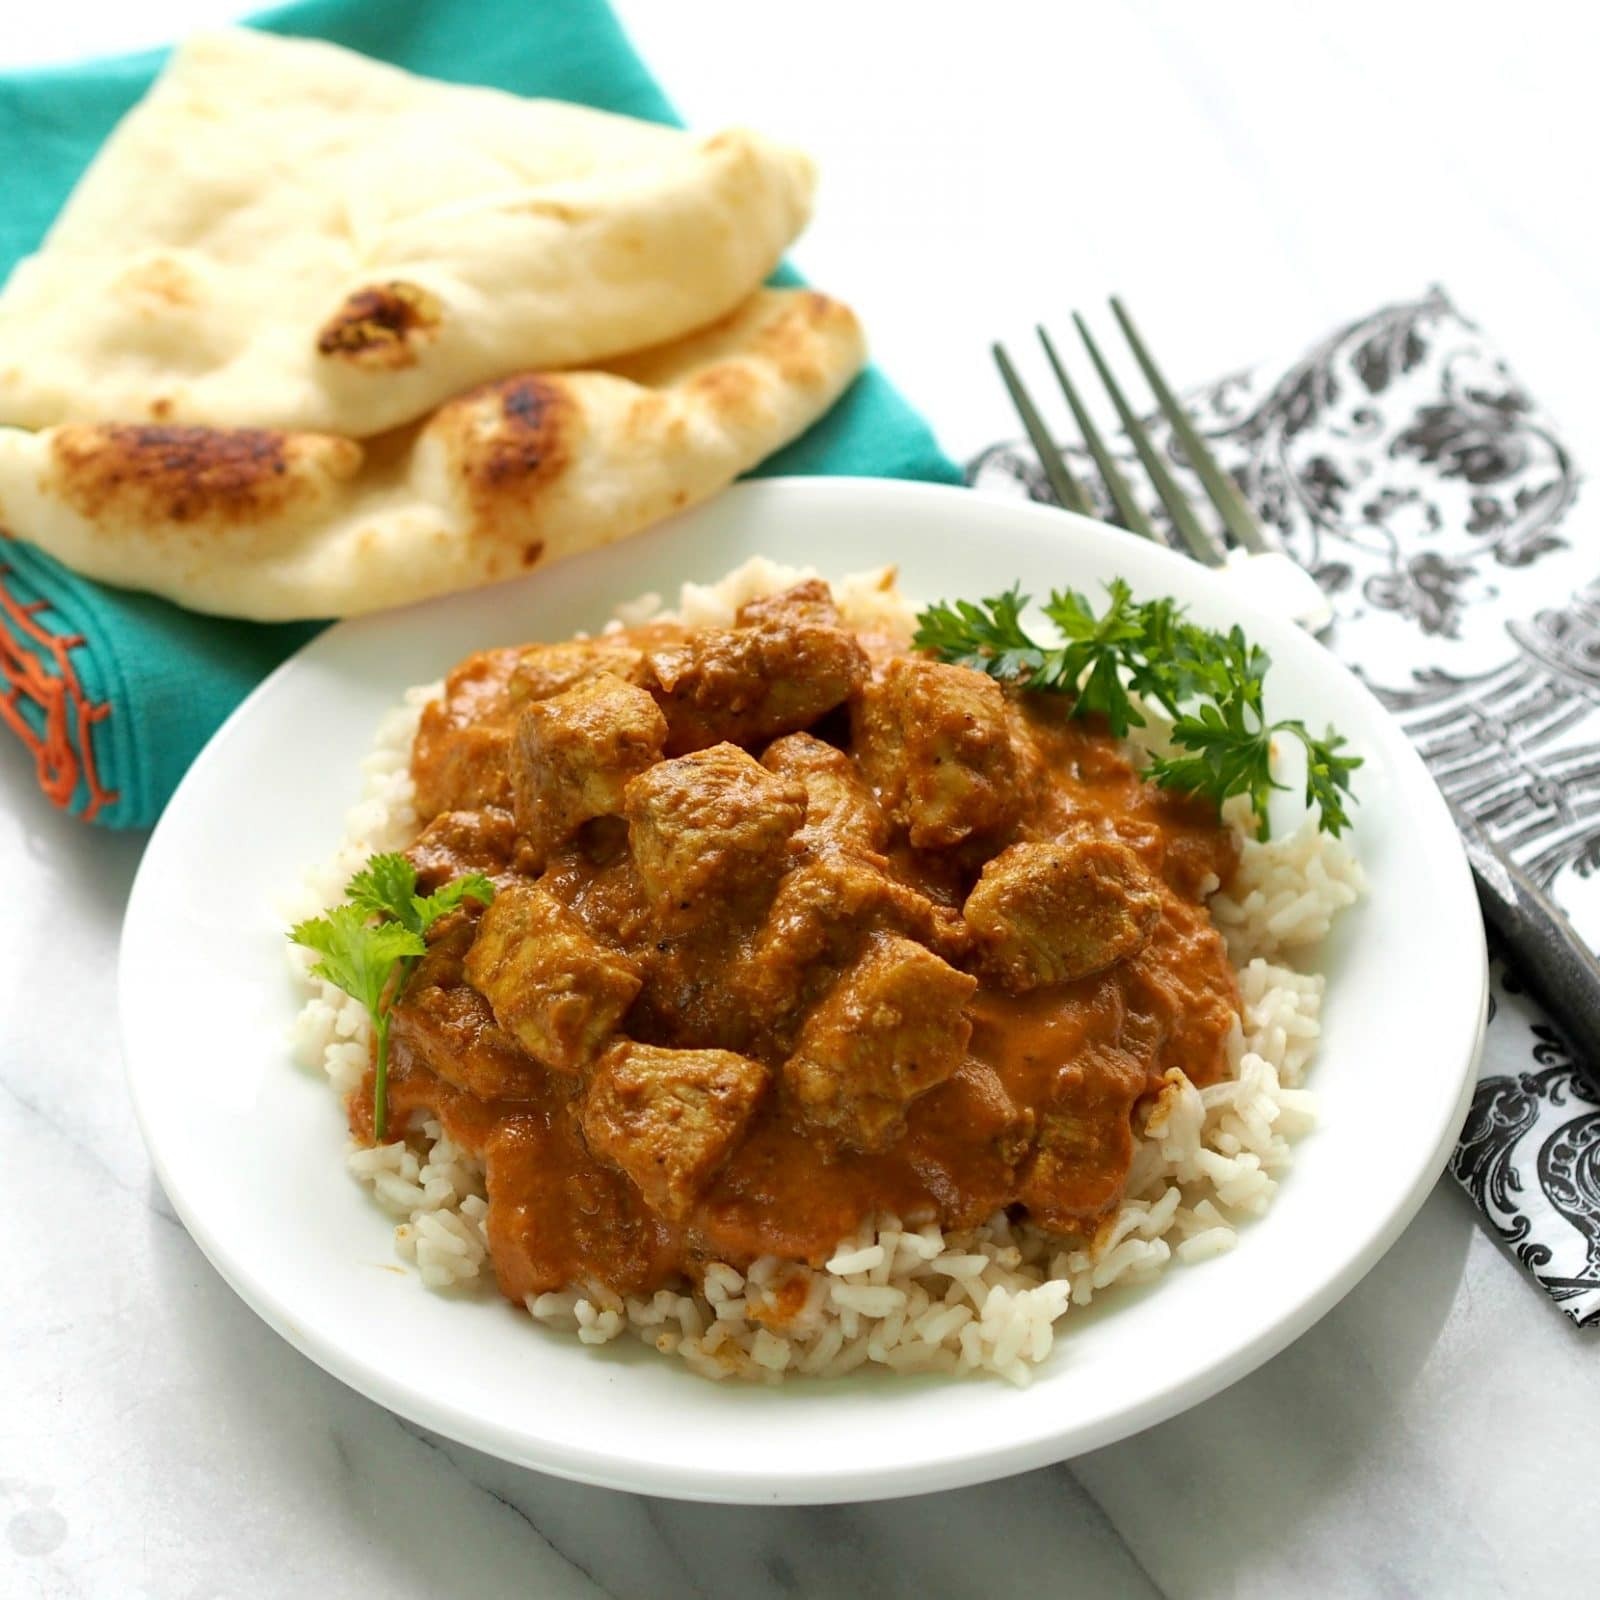 Chicken Tikka Masala - a delicious blend of tender chicken and Indian spices - easy & scrumptious. www.simplysated.com